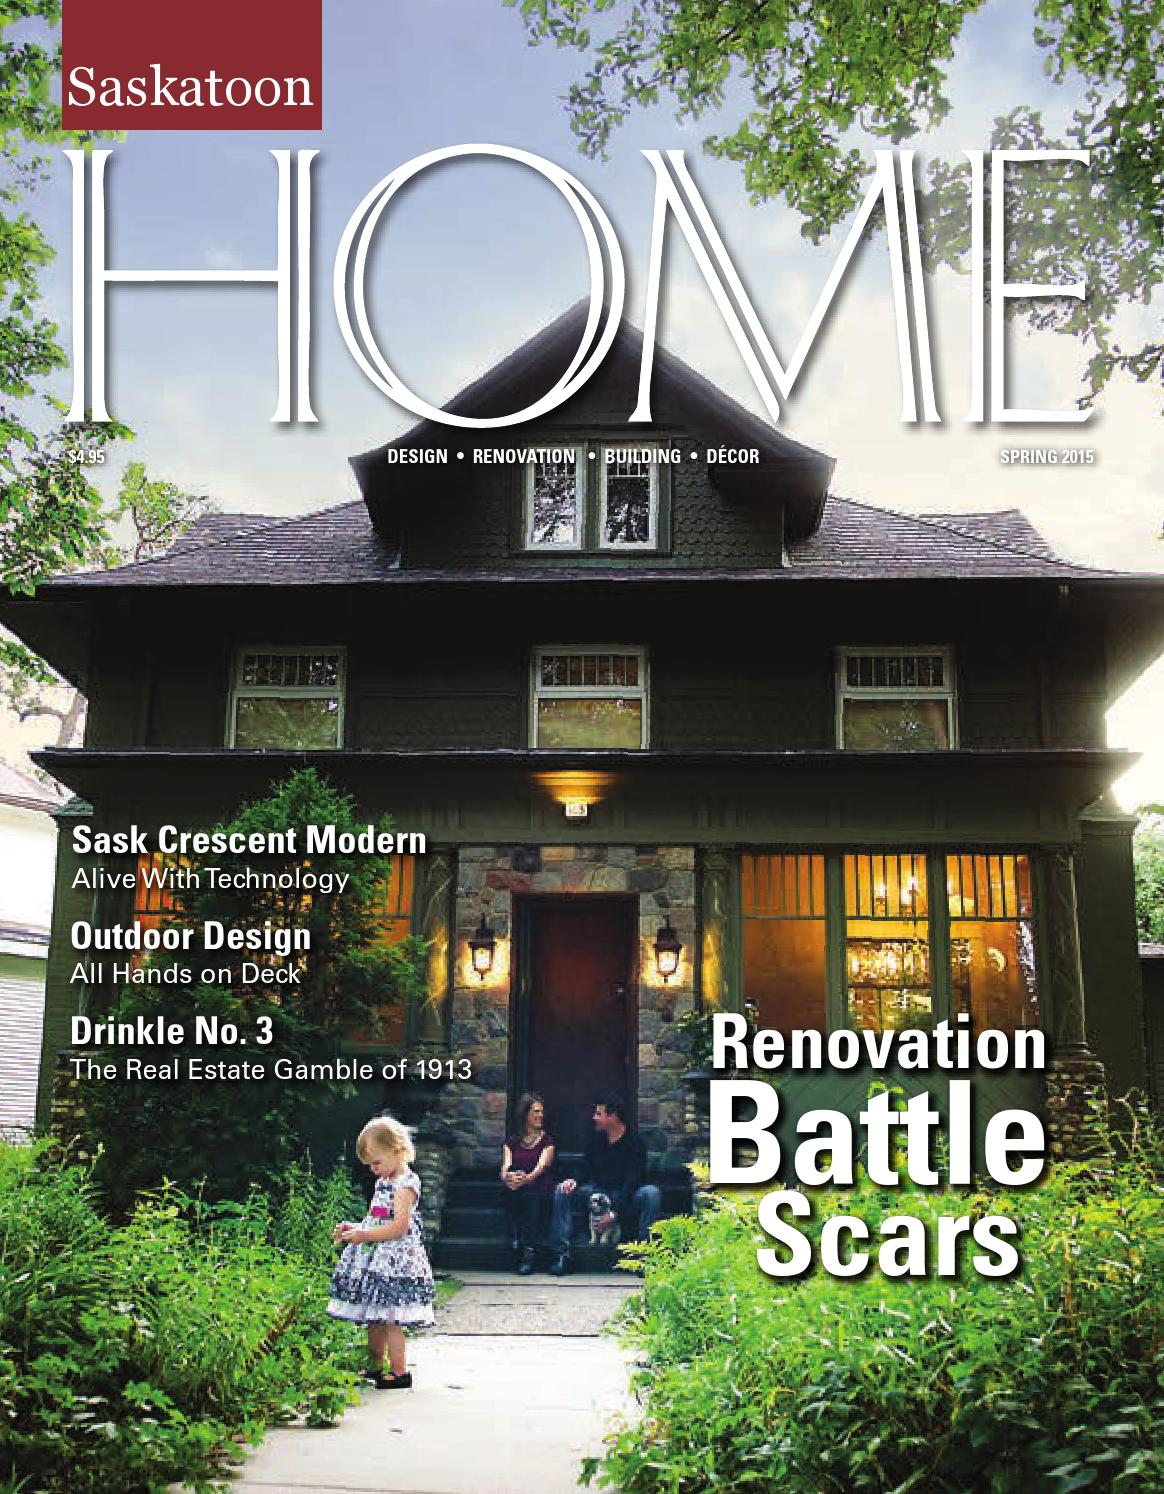 House Designs Html on cheap house designs, 2016 house designs, single story house designs, traditional house designs, unique brick house designs, 2017 house designs, adobe house designs, indian house designs, habitat for humanity house designs, bird house designs, best house designs, smoke house designs, low country house designs, off the grid house designs, single level house designs, eco house designs, simple house designs, 2014 house designs, log house designs, wheel house designs,